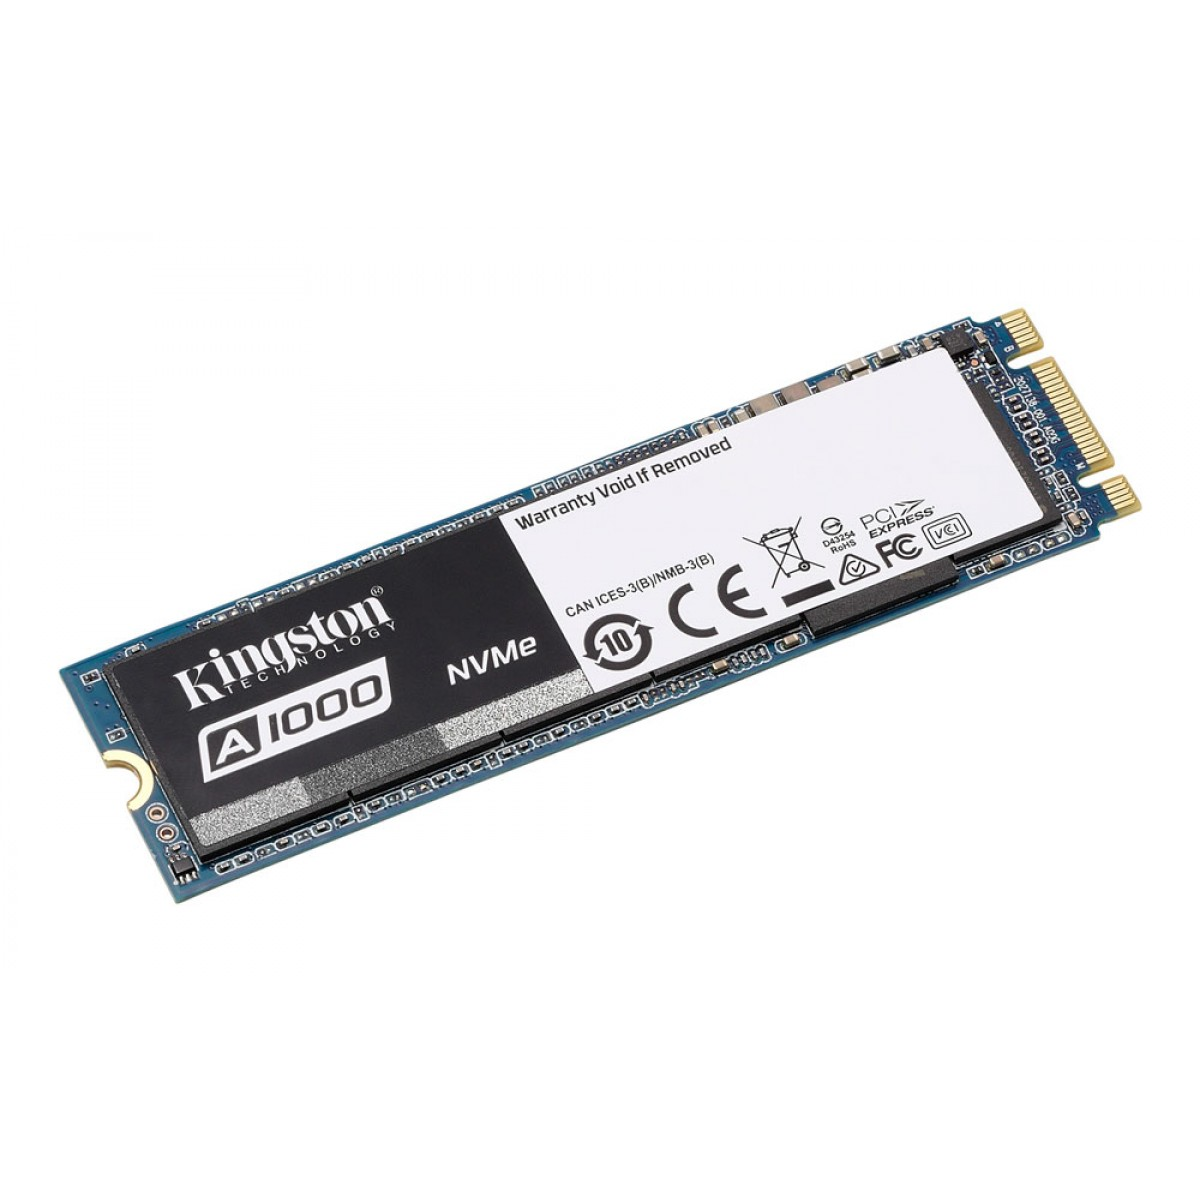 KINGSTON A1000 480GB M.2 NMVe SSD